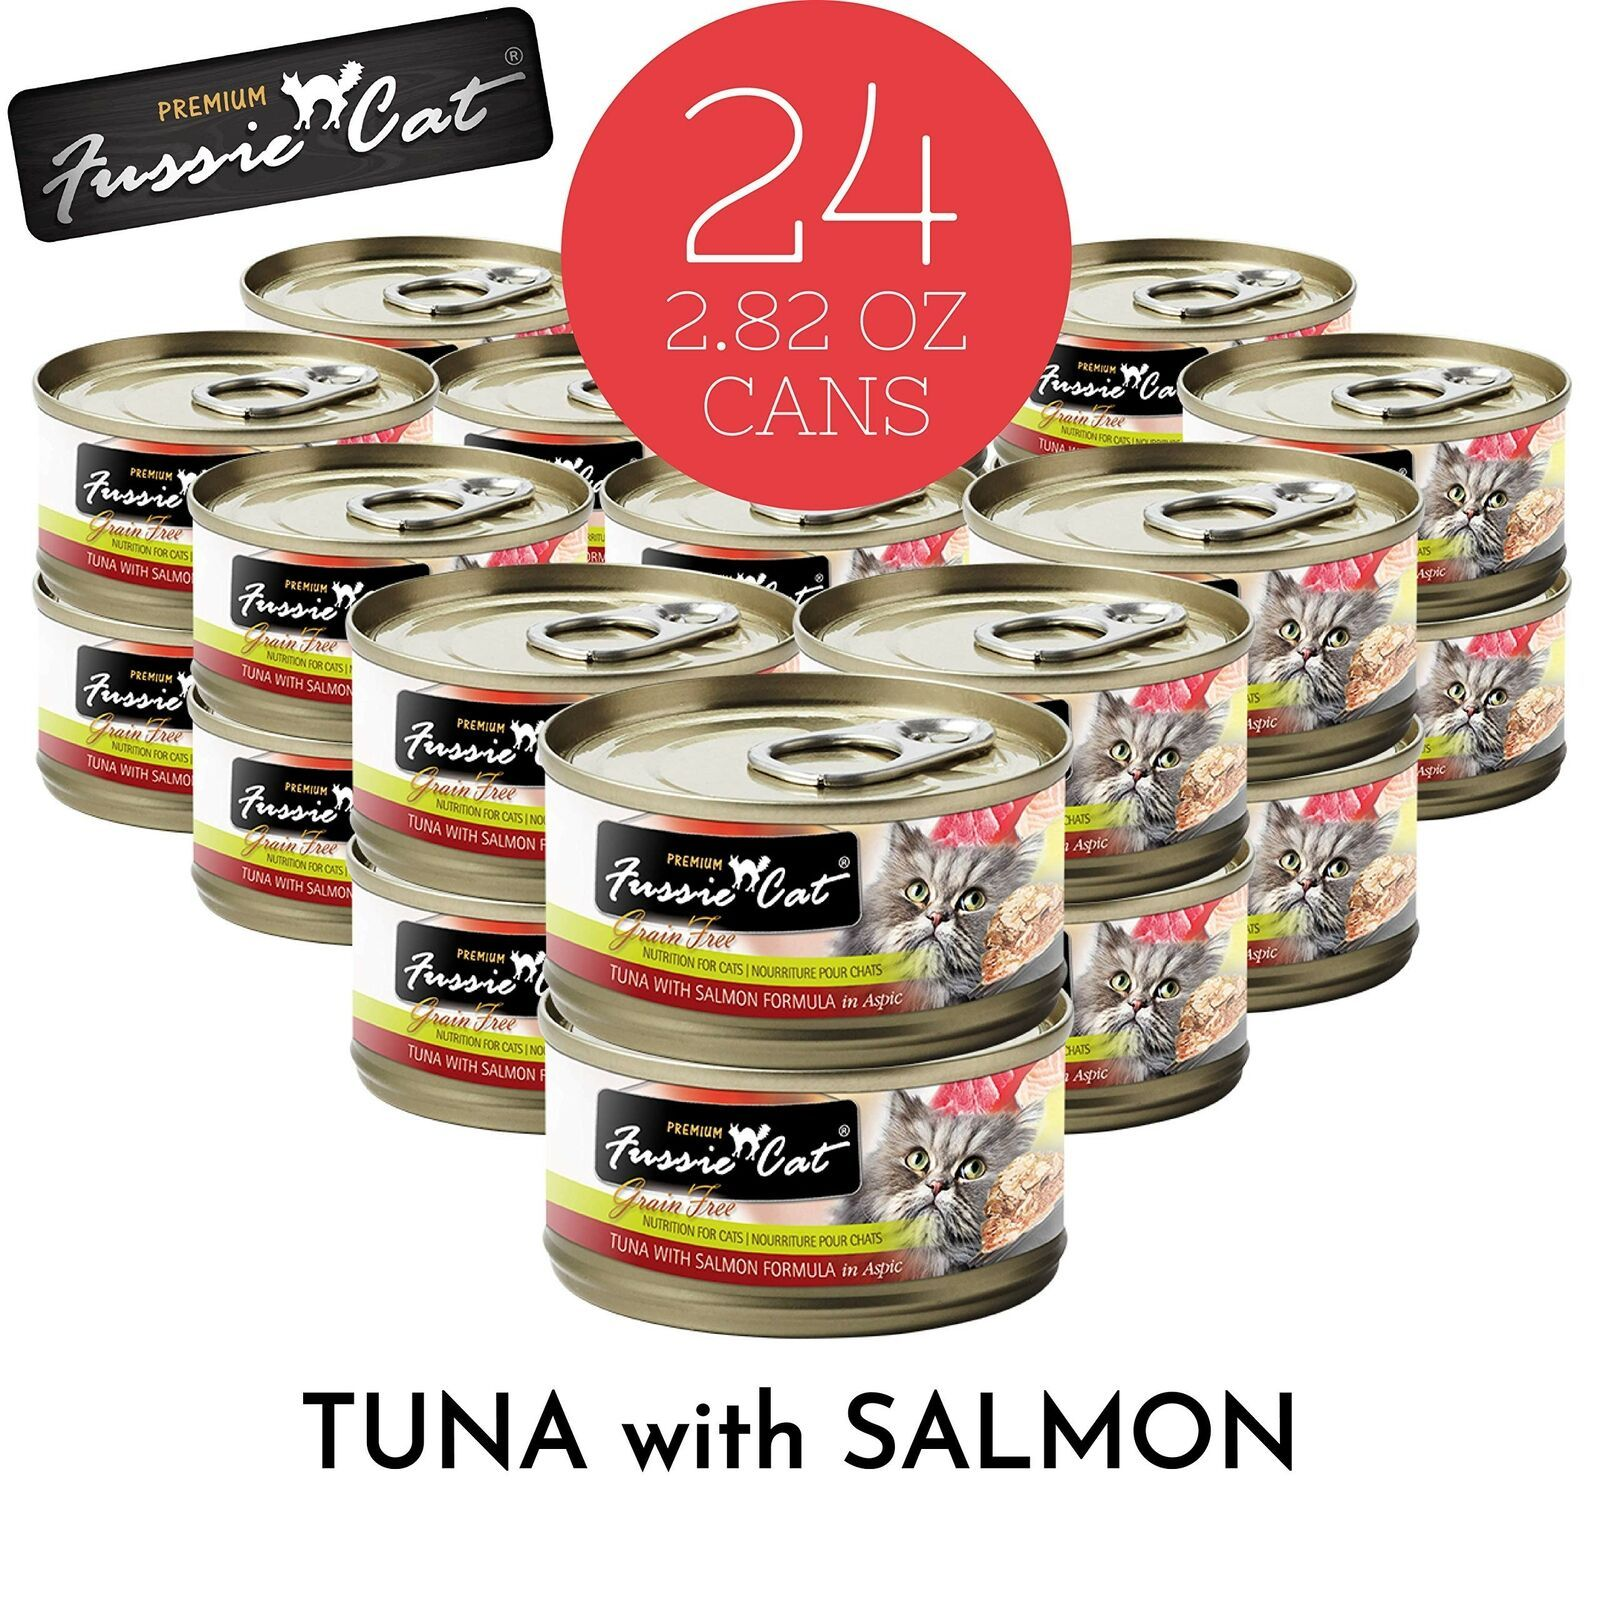 Fussie Cat Premium Tuna with Salmon Canned Cat Food 24 2